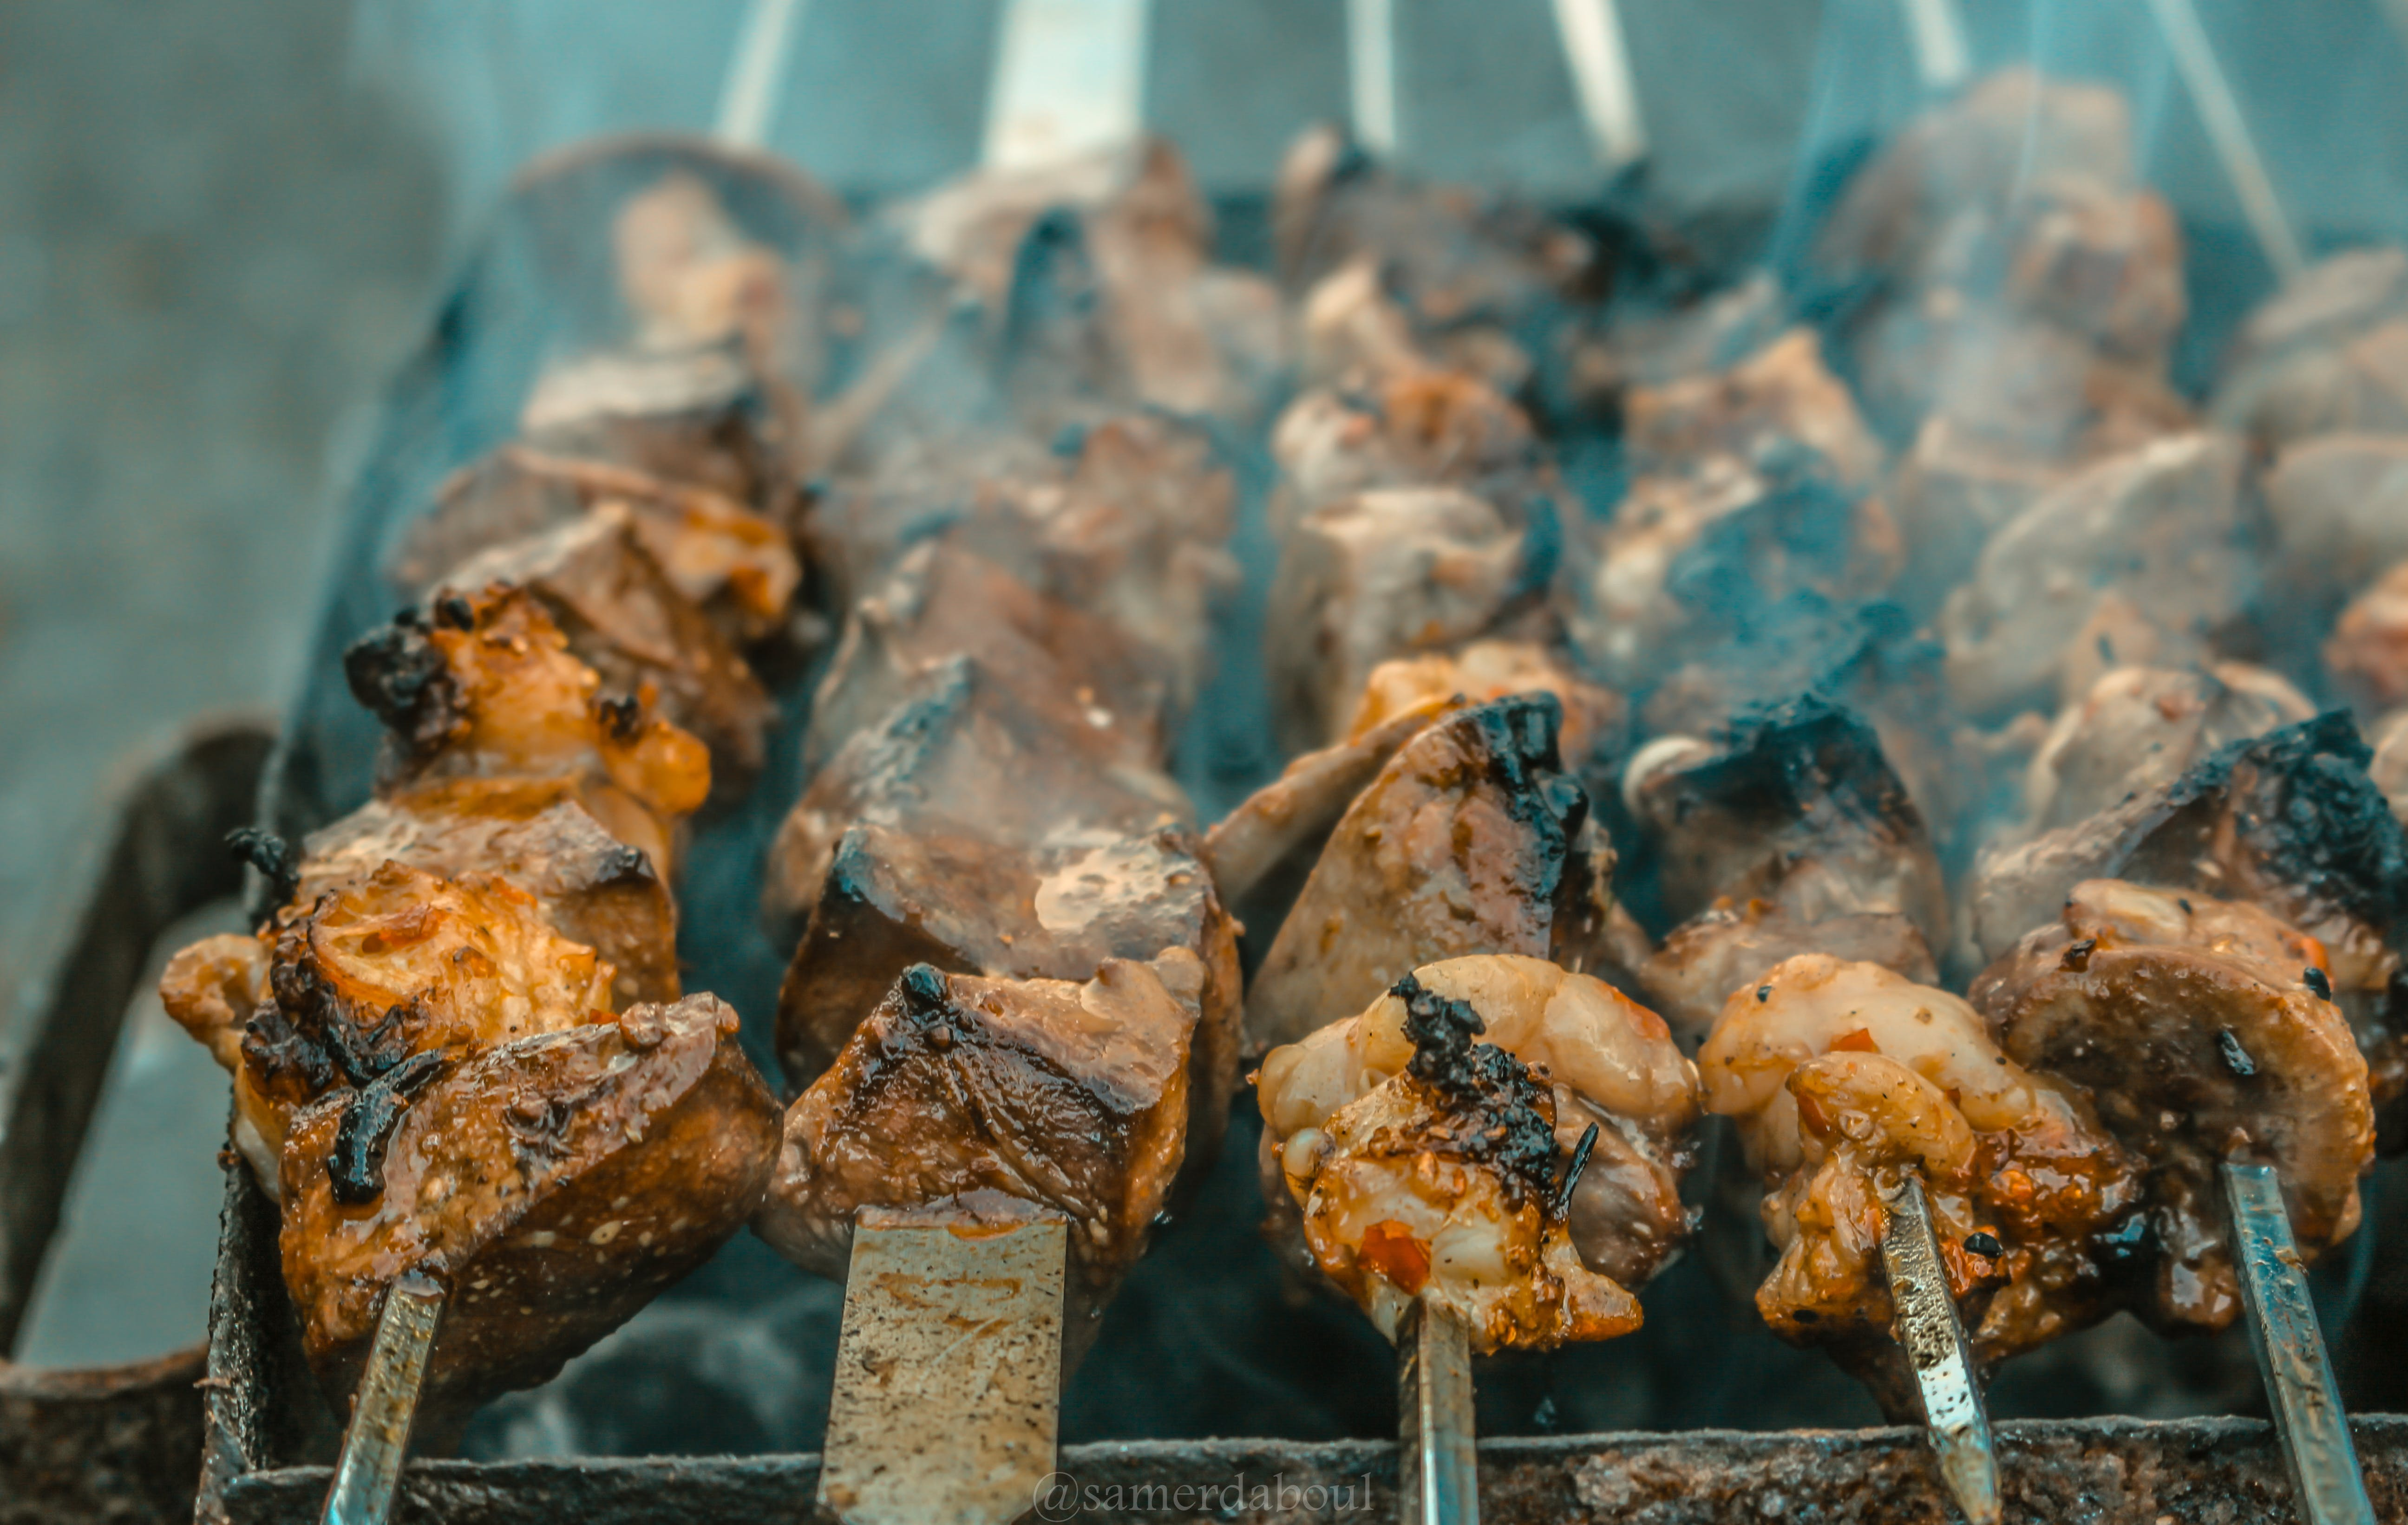 Free stock photo of barbecue, charcoal, cooking, cookout